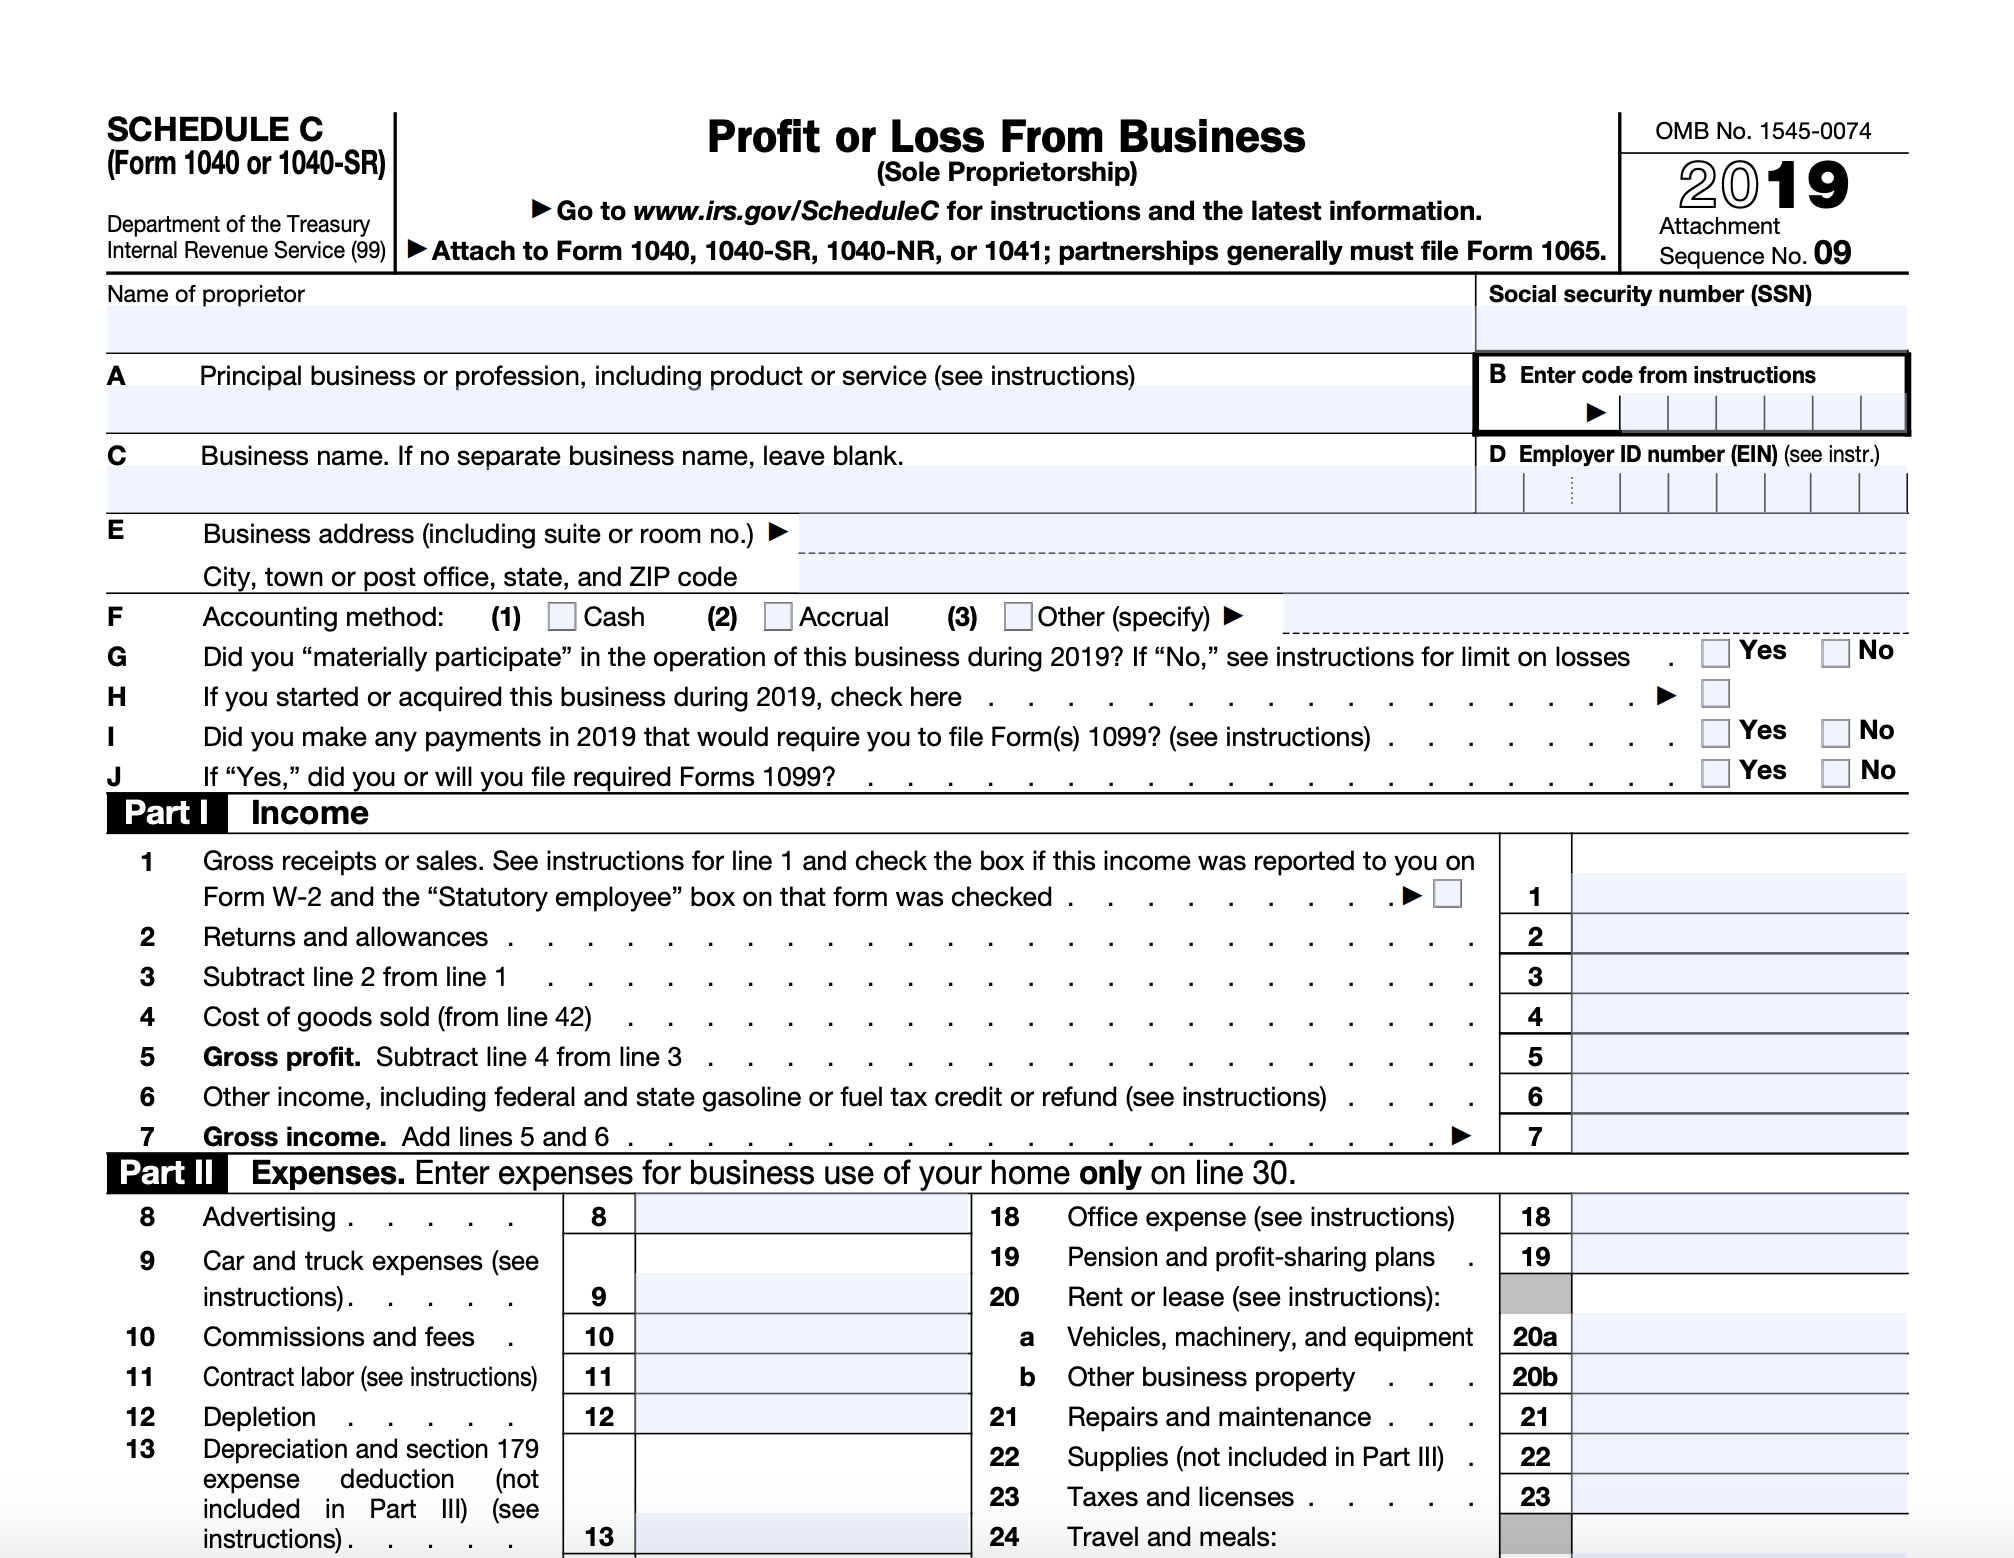 Excerpt of the Form 1040 Schedule C